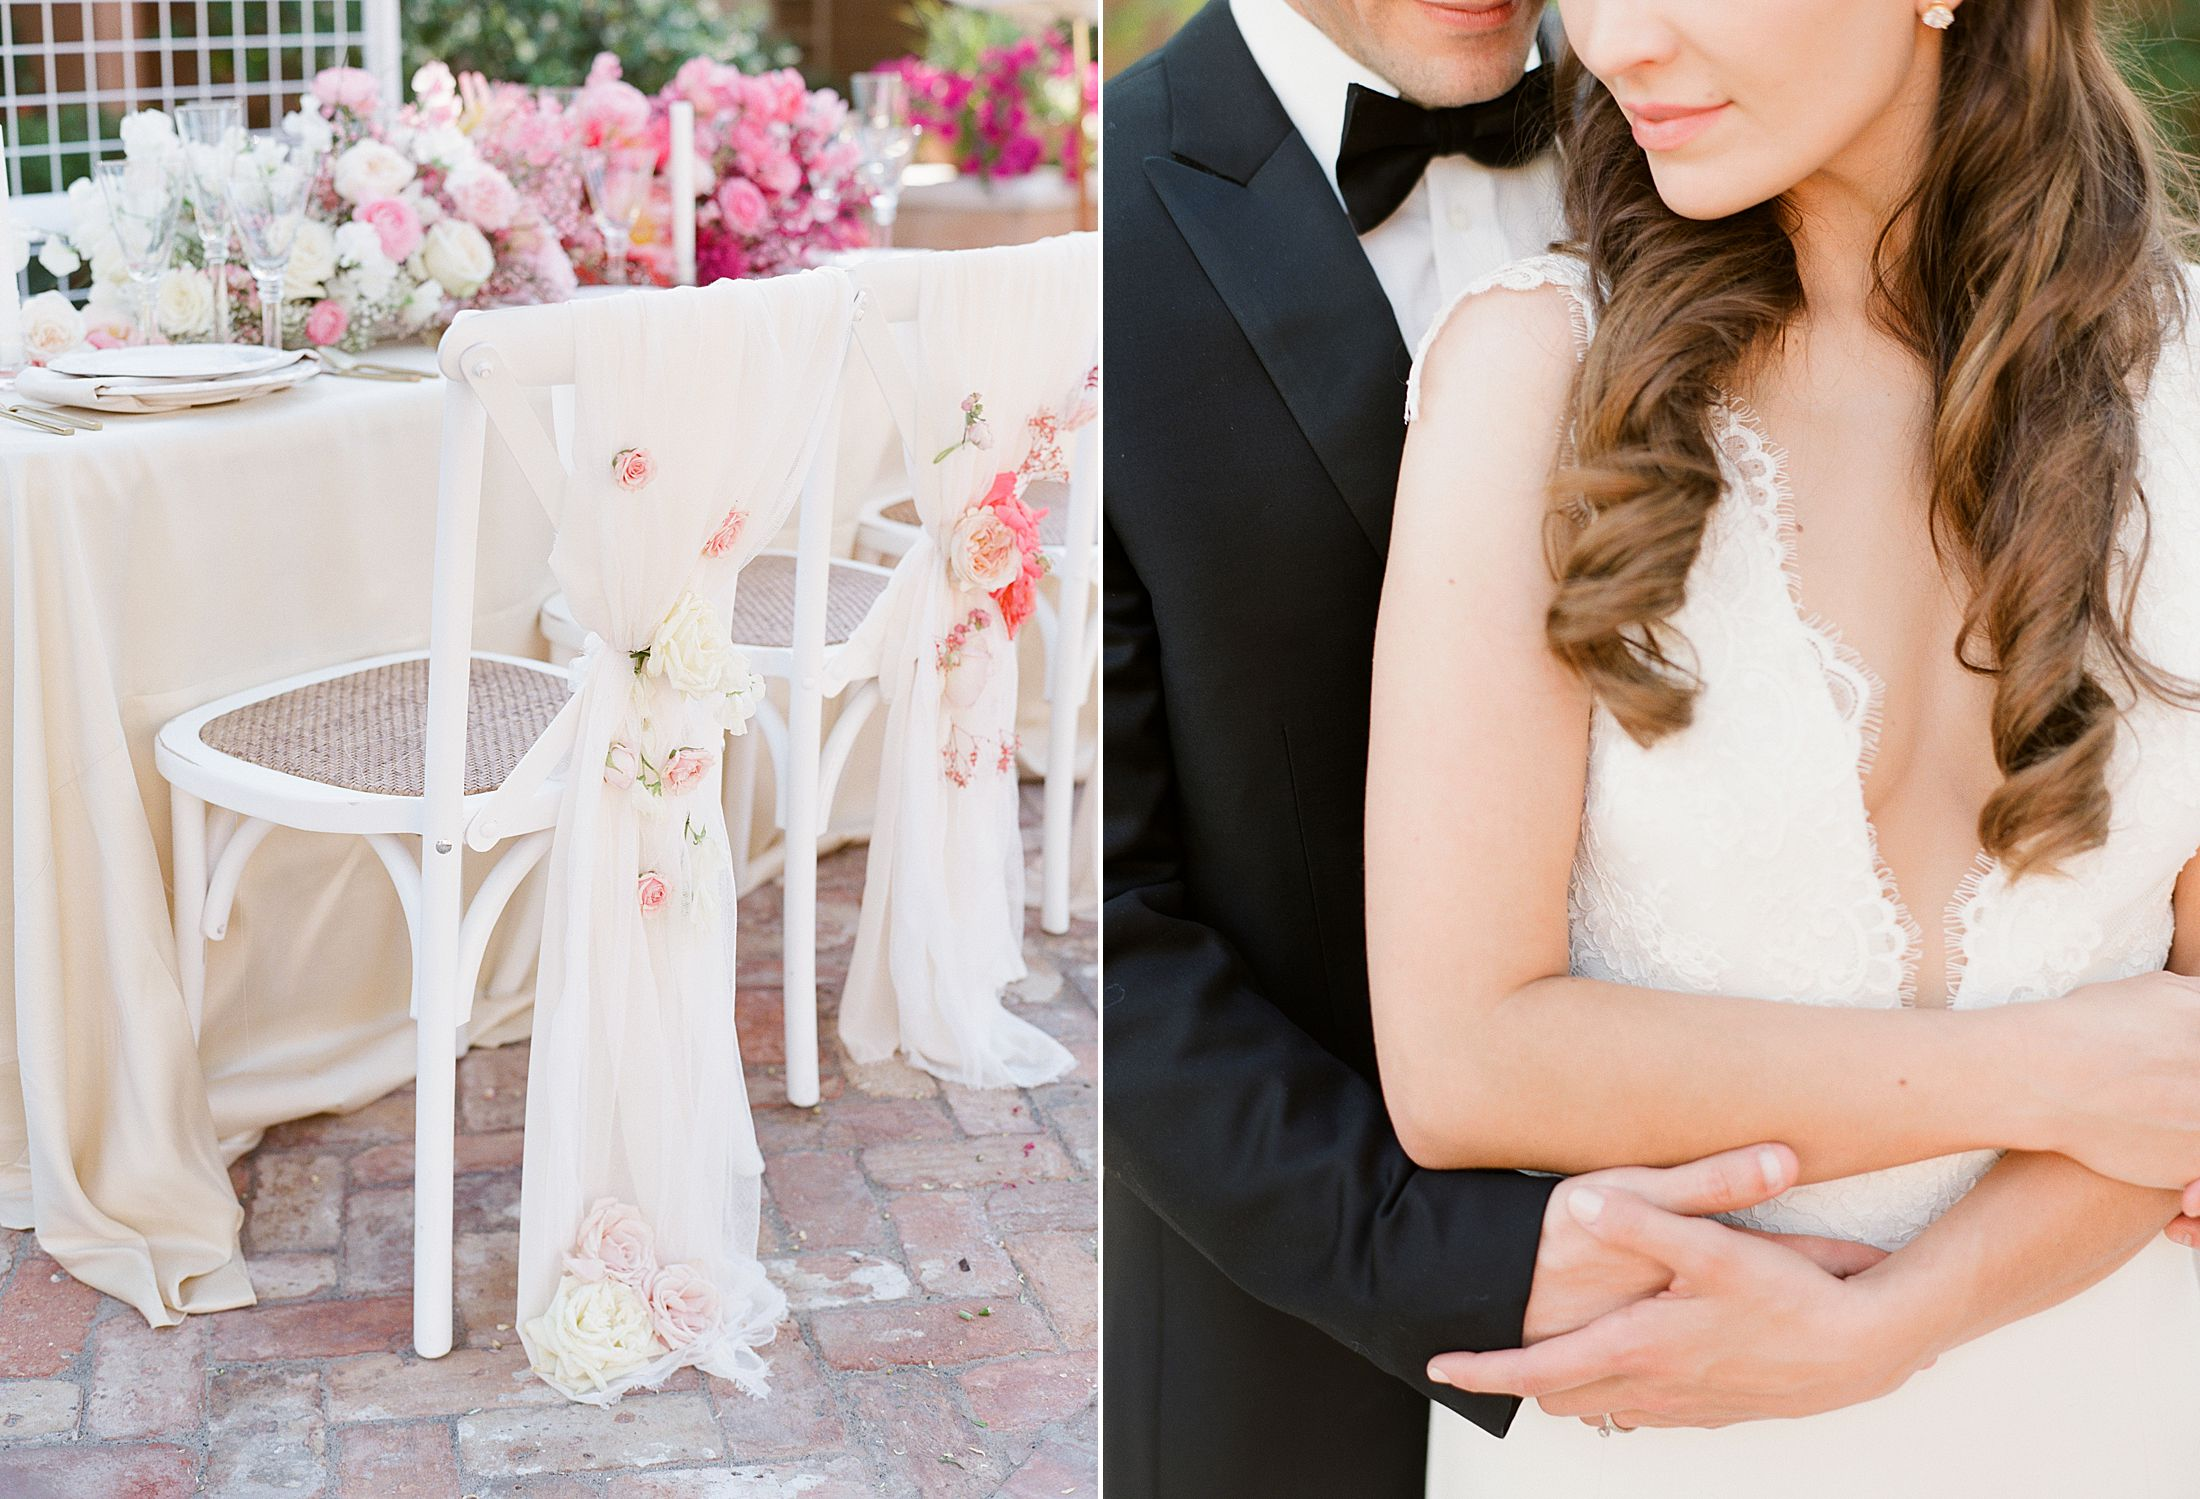 Pink Ombre Wedding Inspiration on Style Me Pretty - Royal Palms Wedding - Scottsdale Wedding - Ashley Baumgartner - Bloom and Blueprint - Wedding Puppies - Bulldog Puppies_0022.jpg